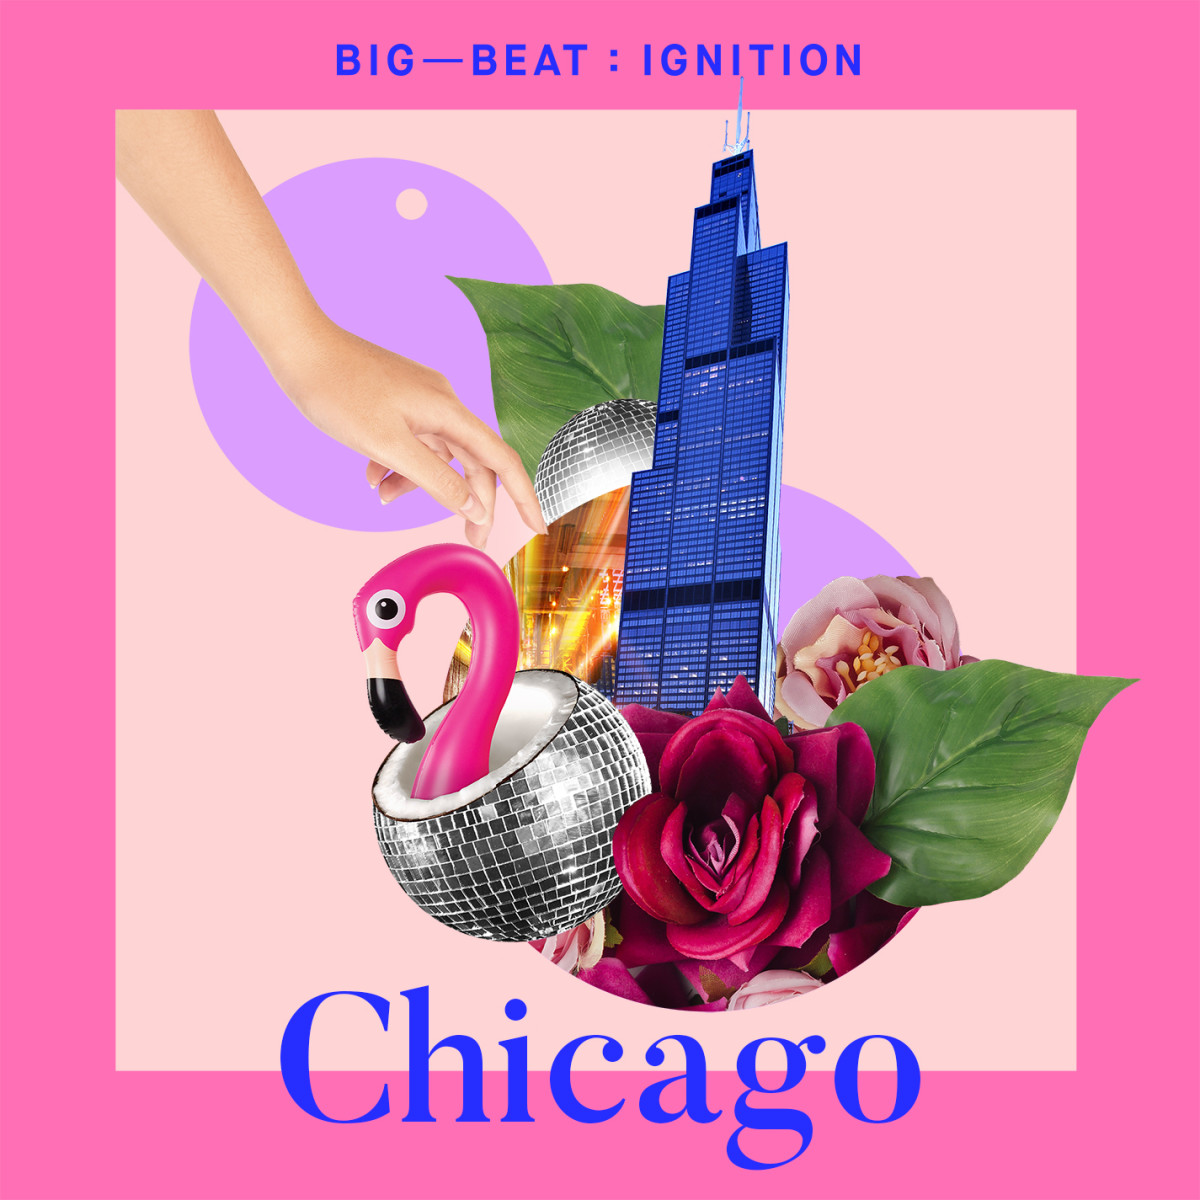 Big Beat Ignition - Chicago Compilation (ALBUM ART)